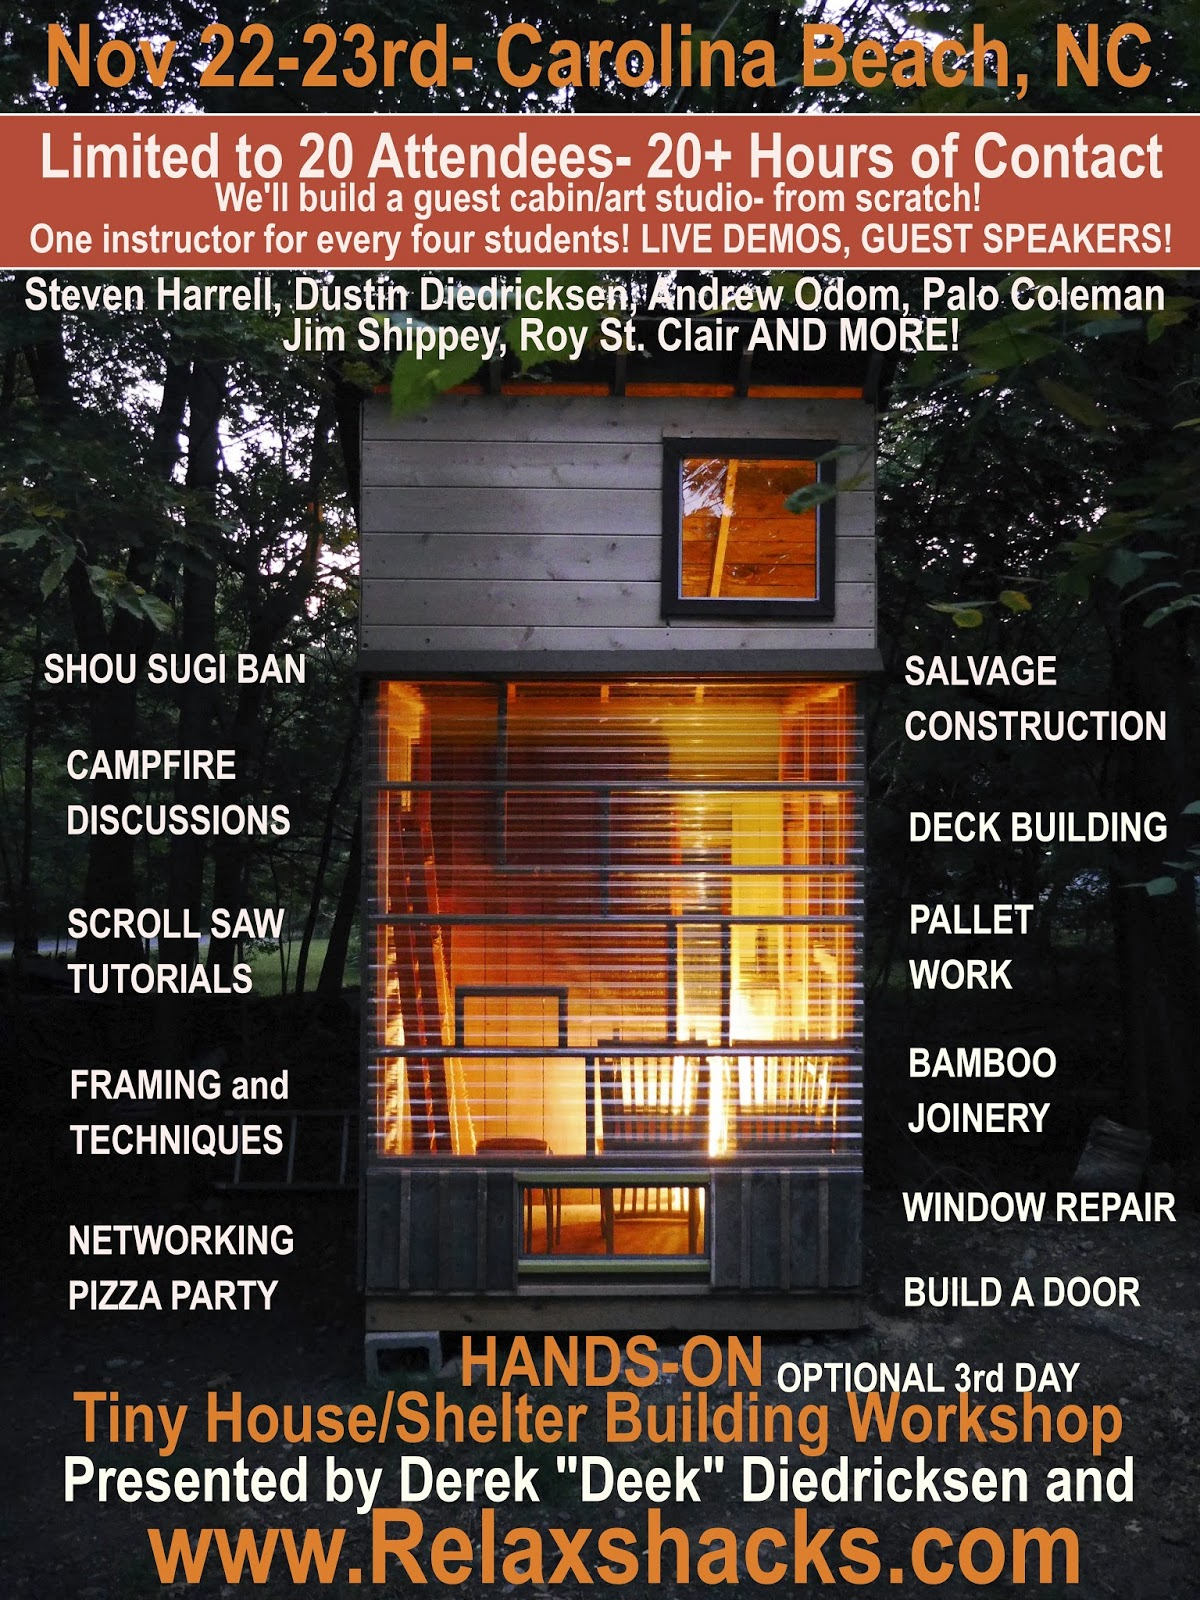 Relaxshackscom JUST ANNOUNCED TINY HOUSE BUILDING AND DESIGN